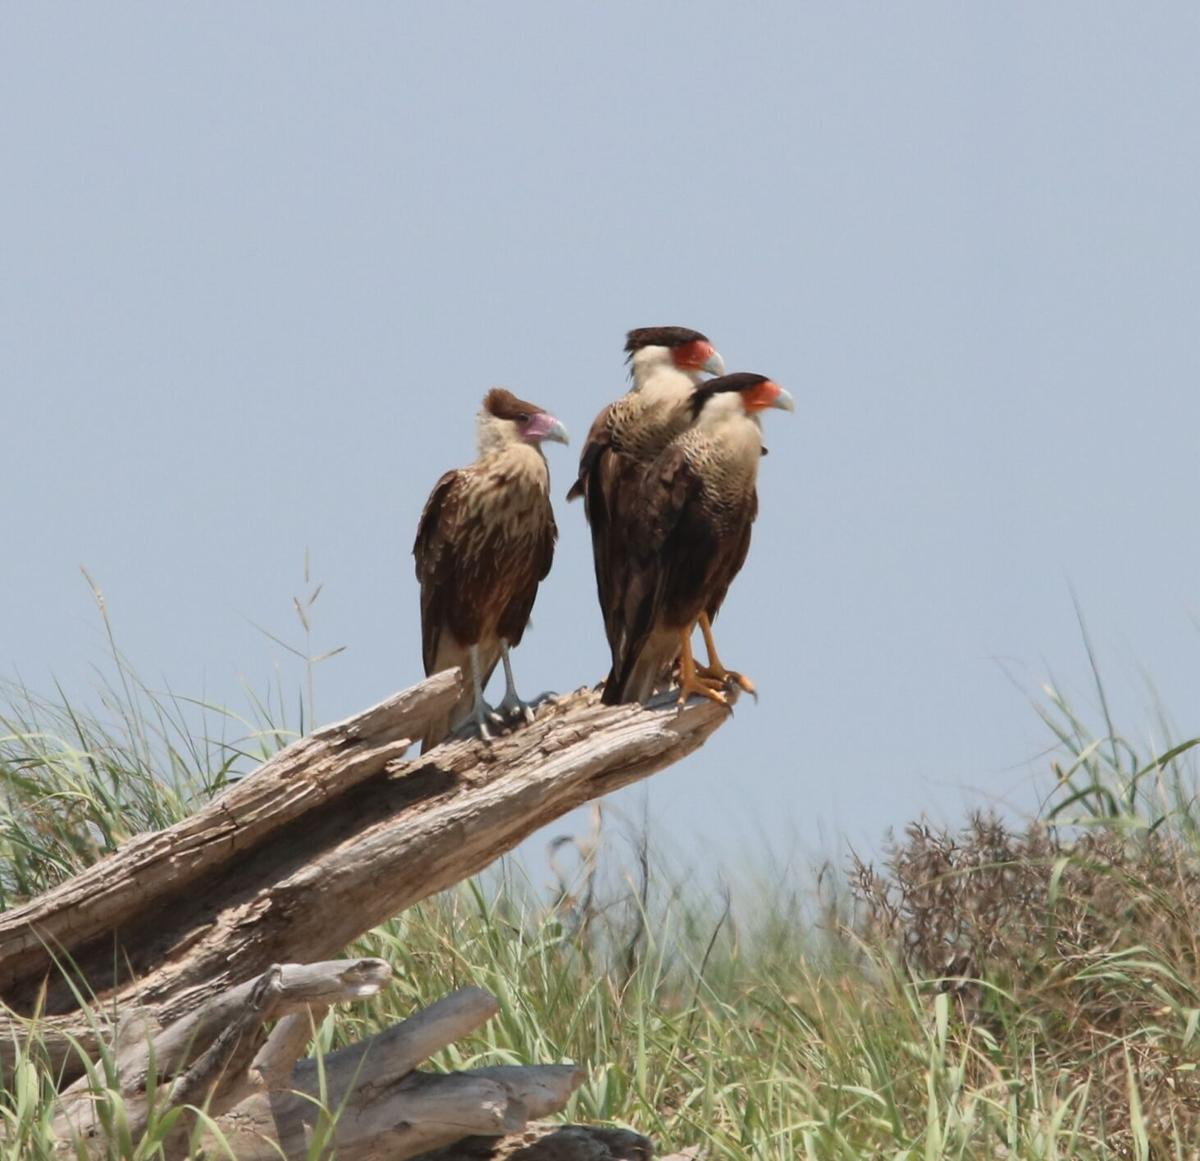 Crested caracara family